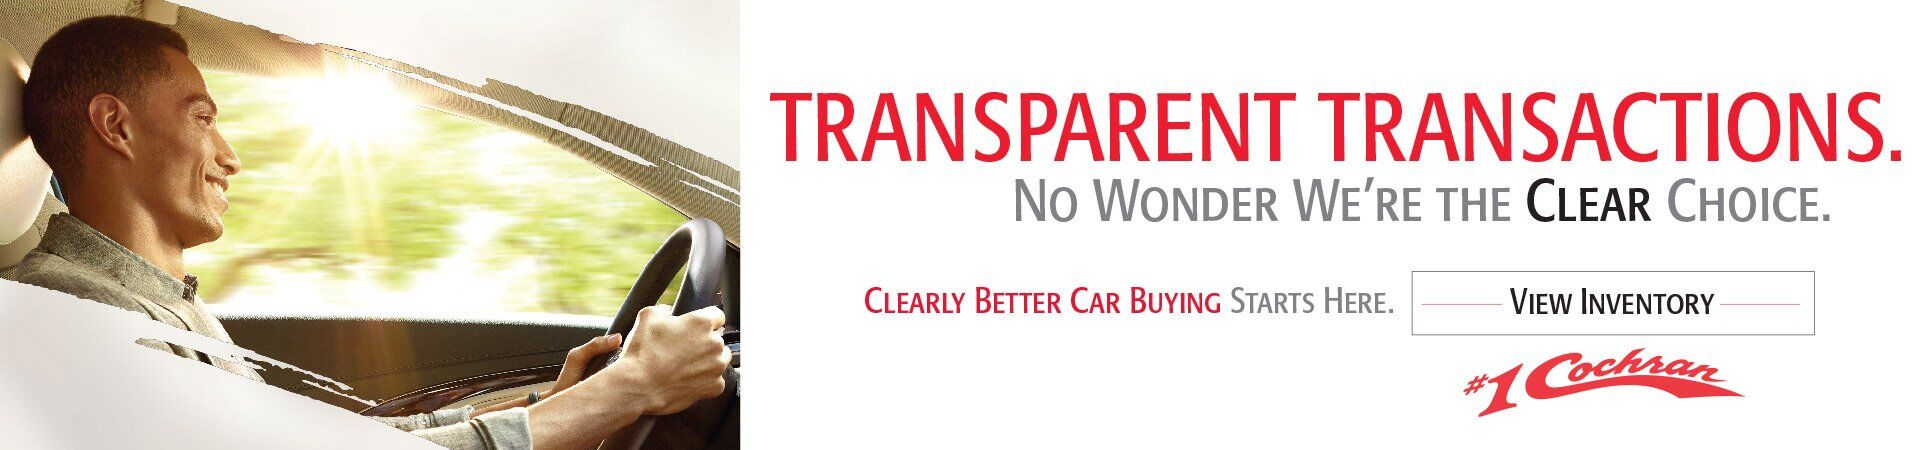 Transparent Transactions. Always. Volkswagen North Hills.